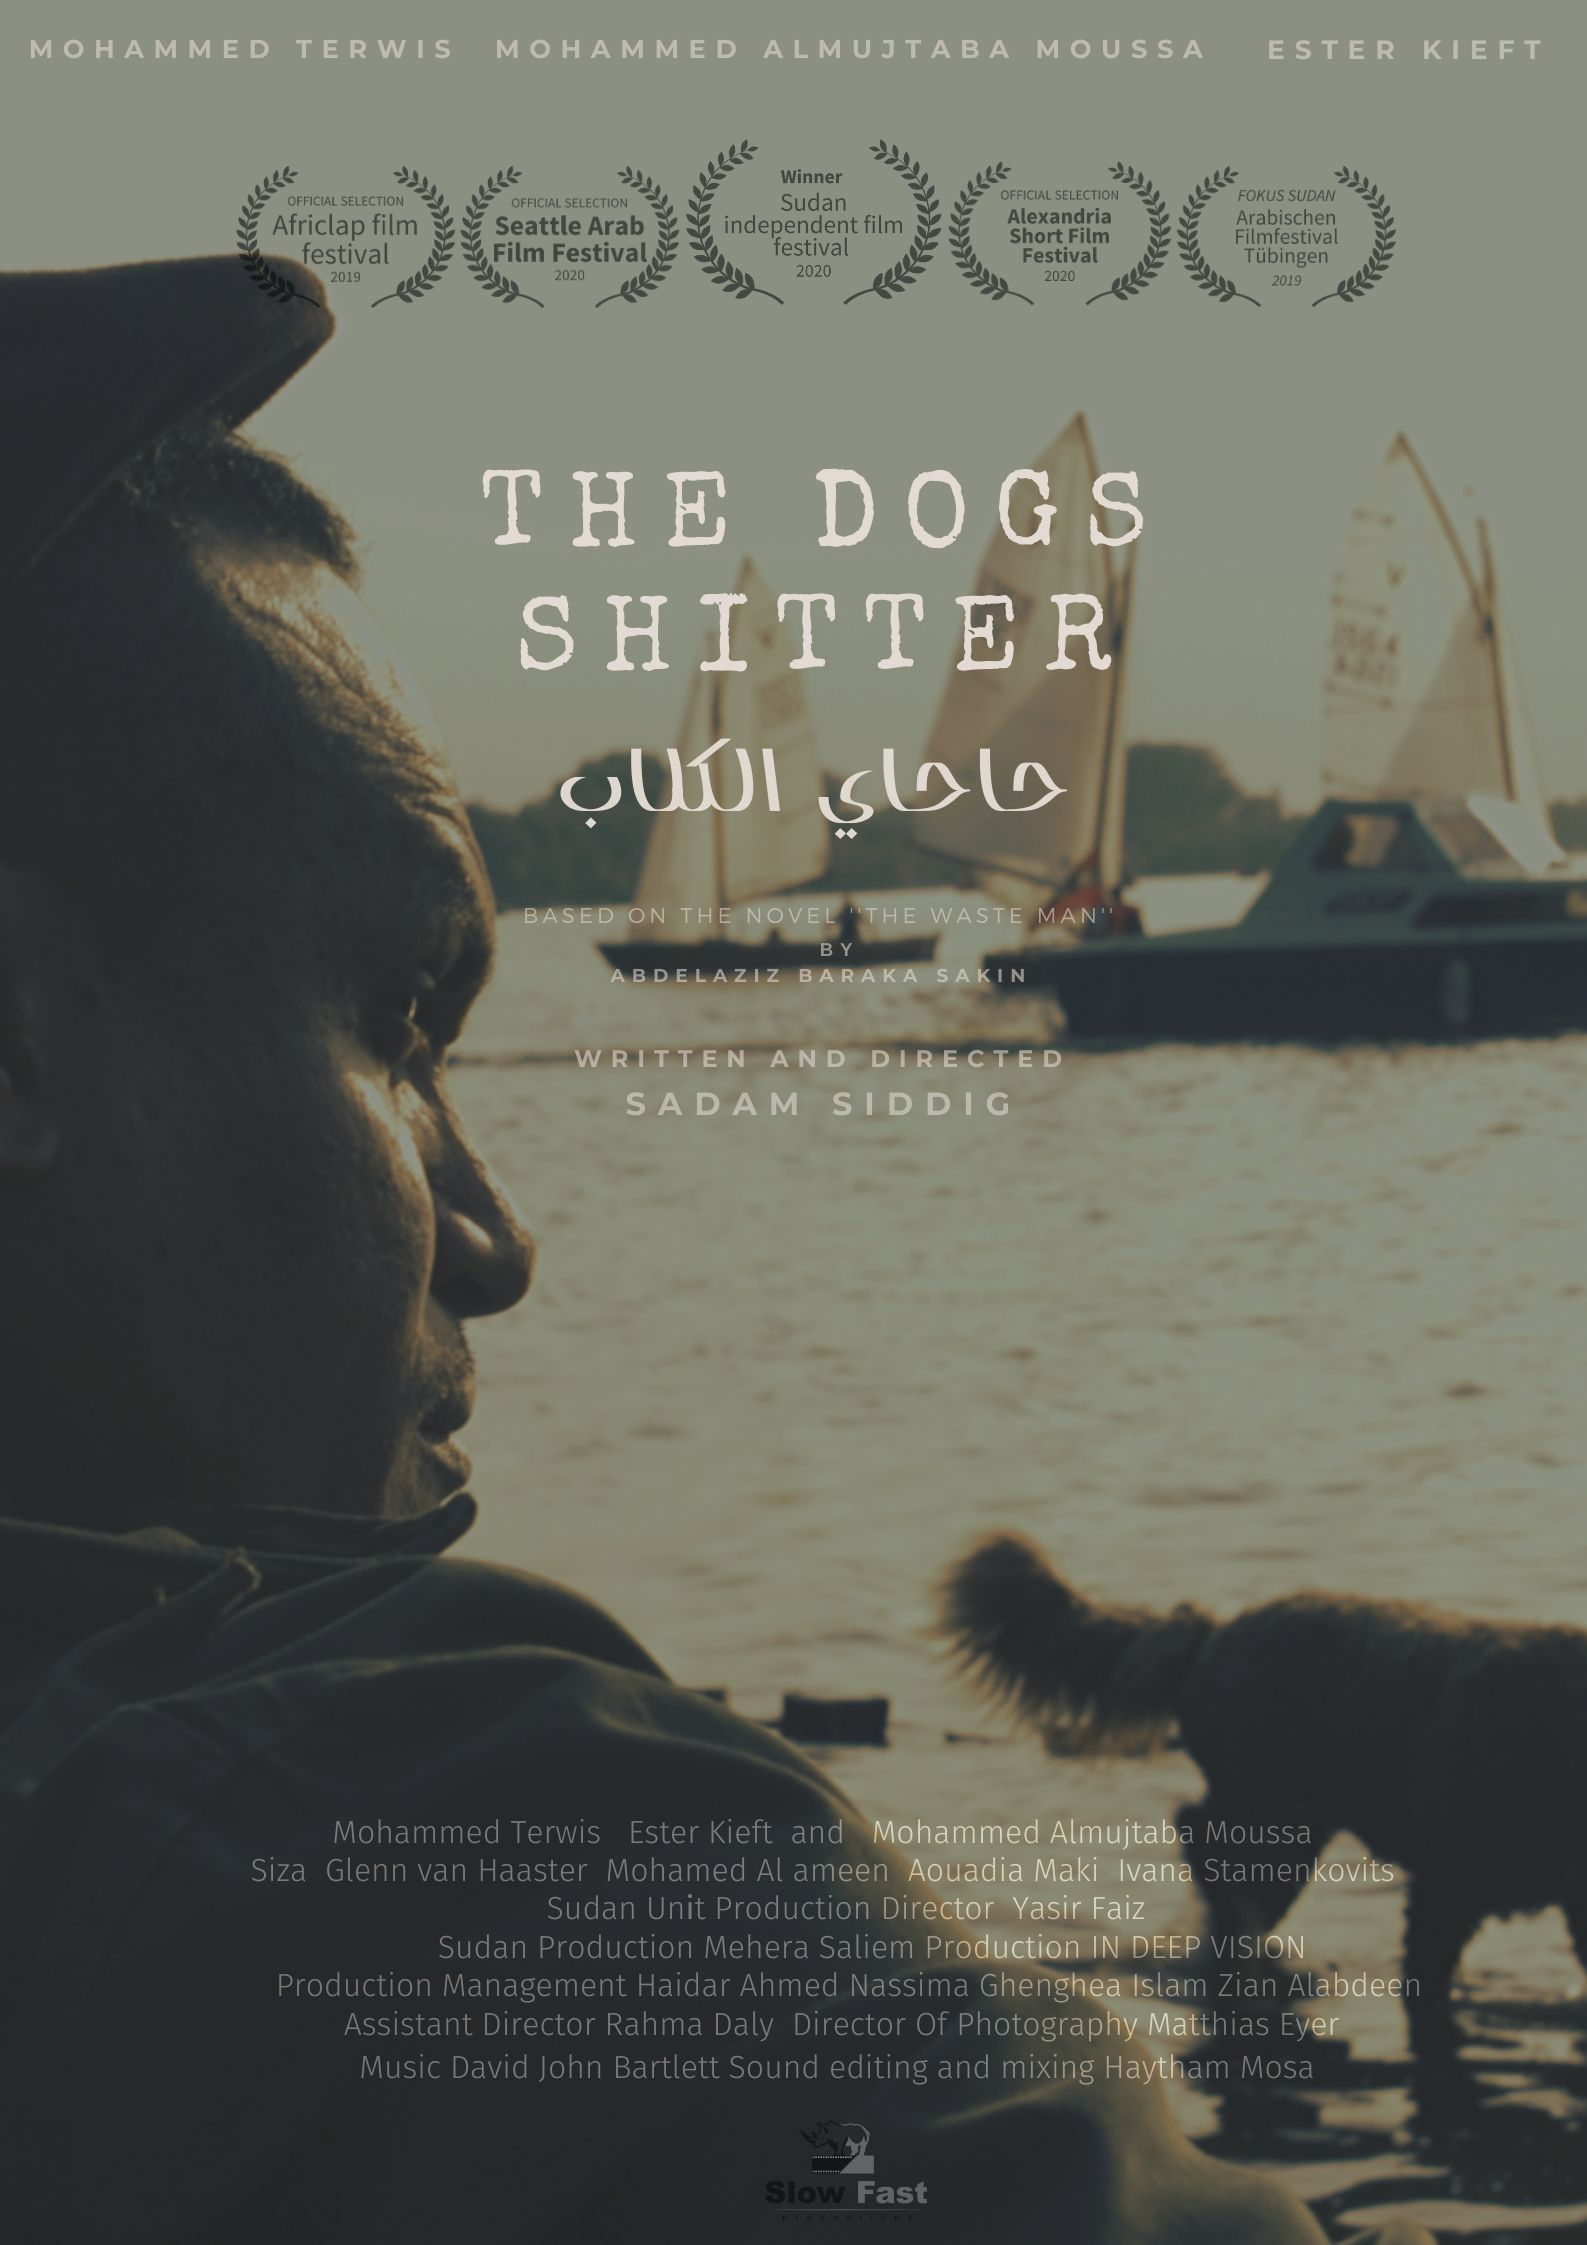 The dogs' shitter